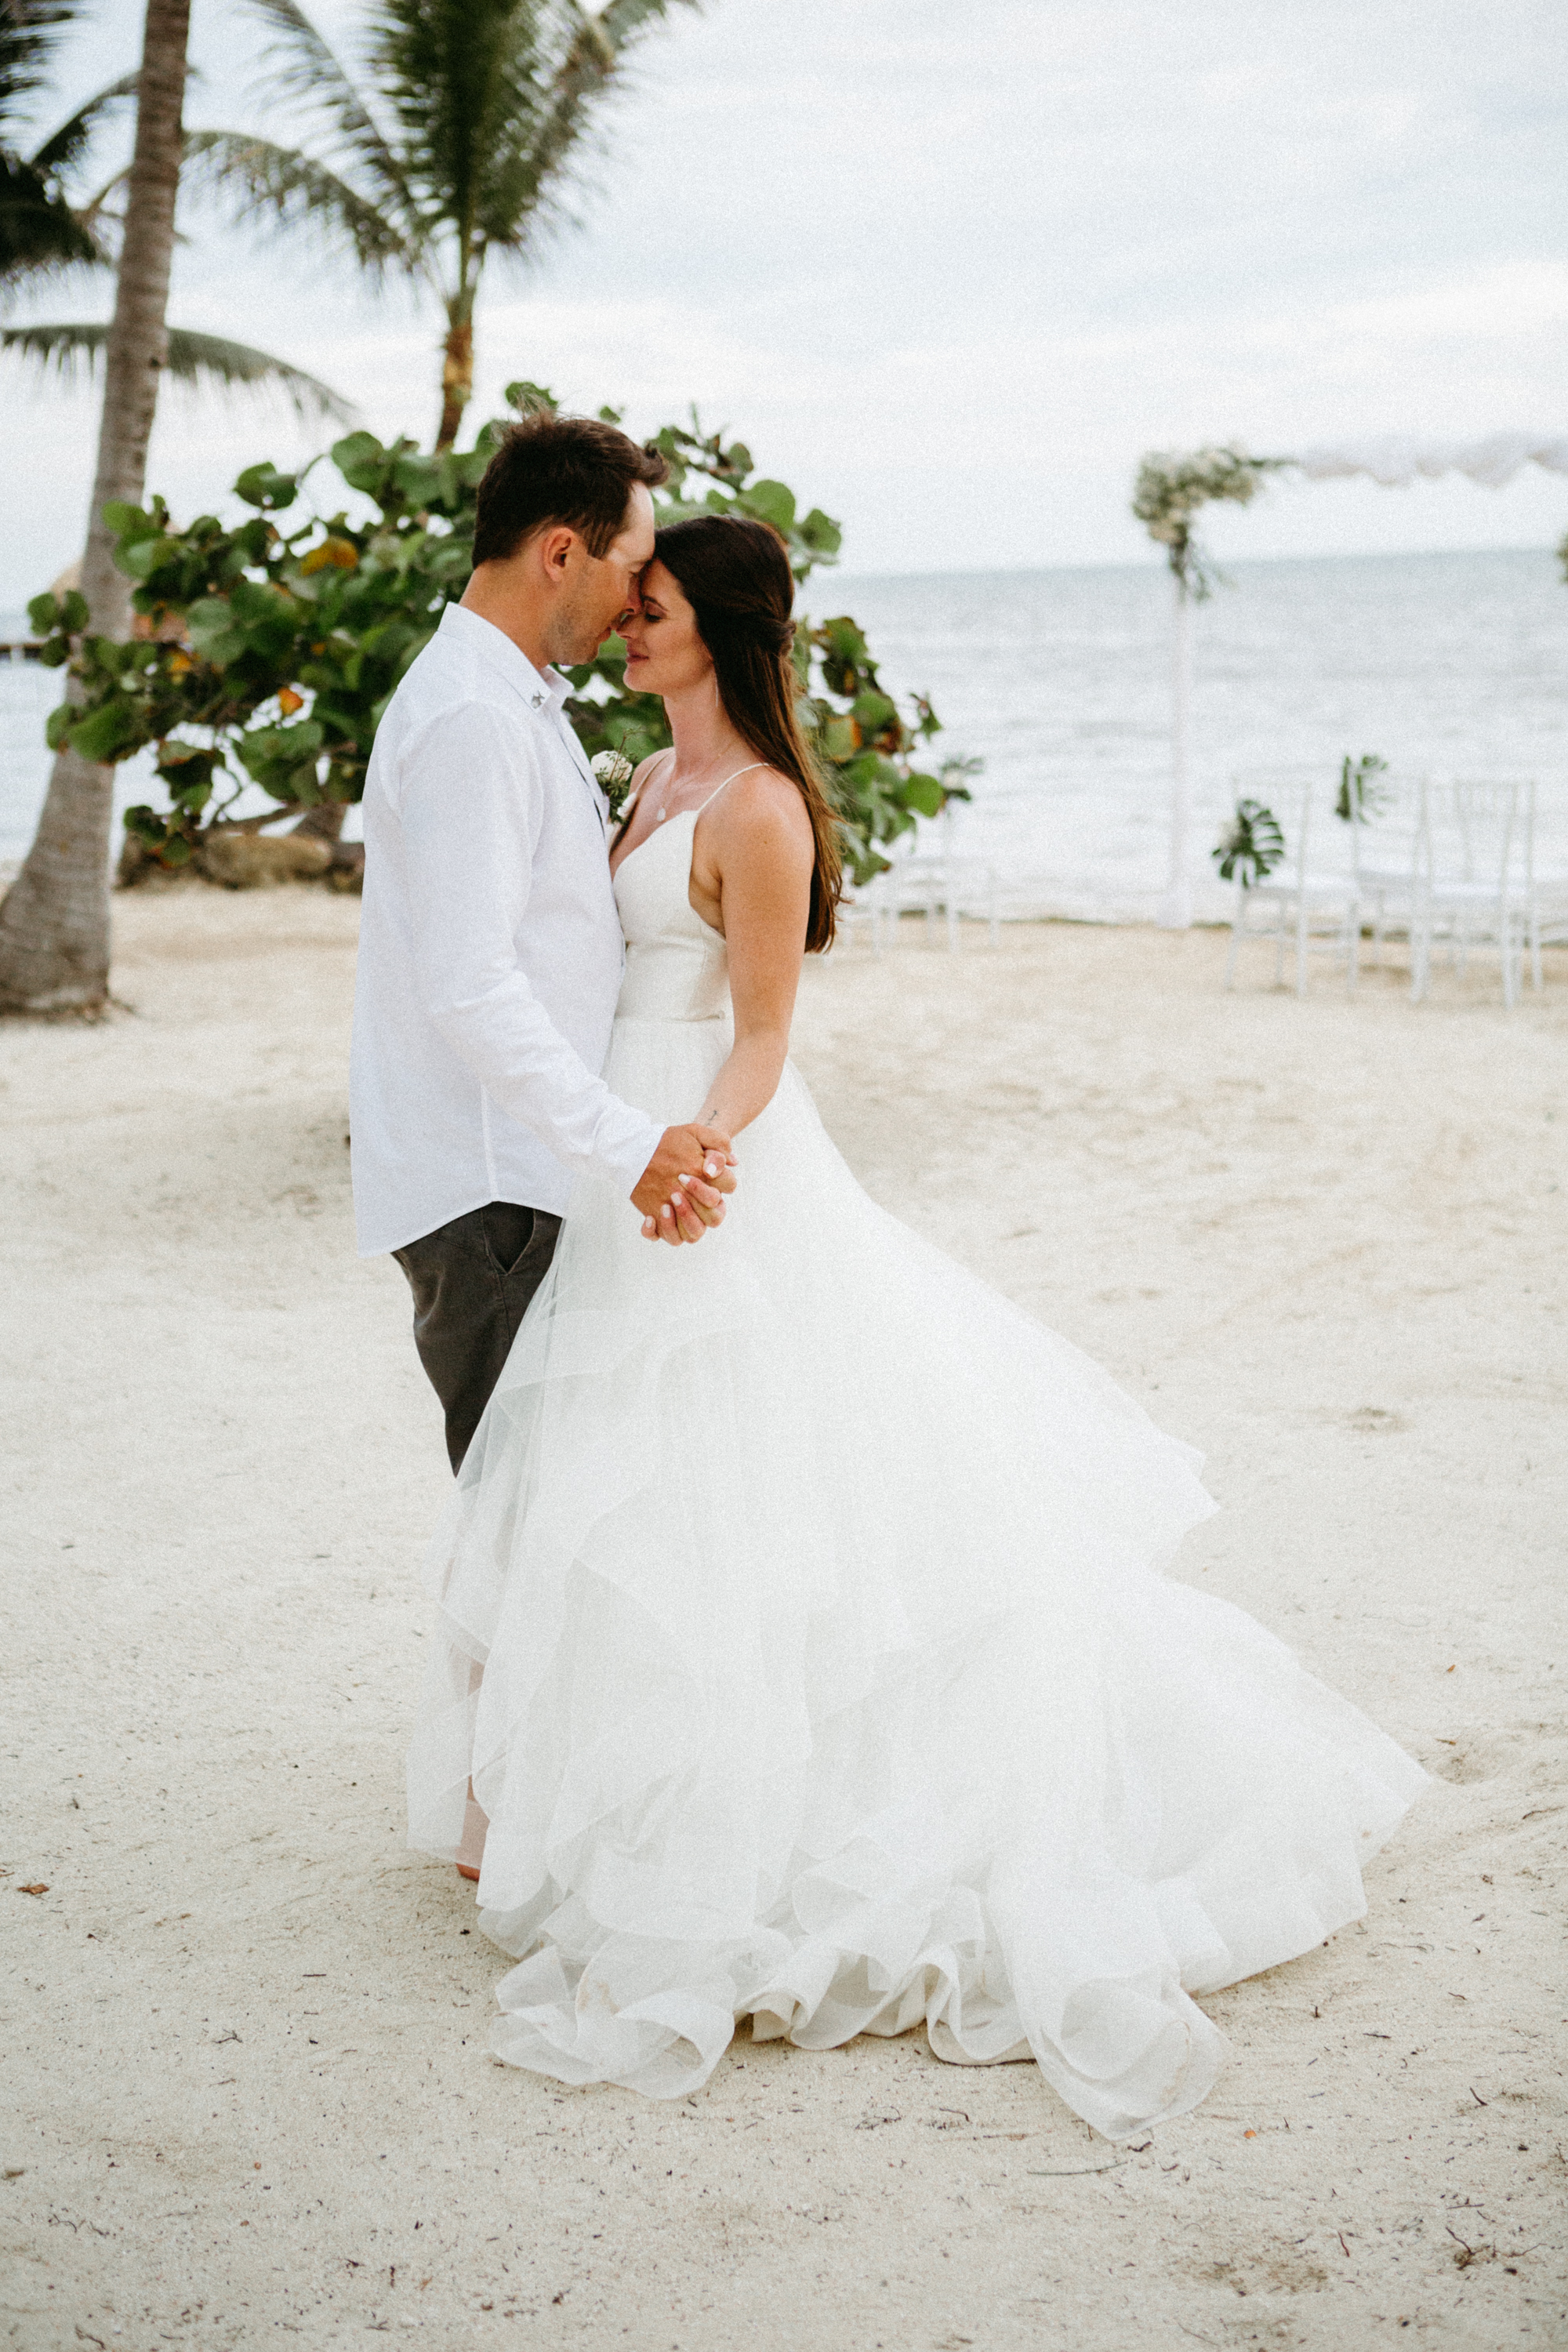 san-pescador-belize-wedding-christinemariephoto-j-k-113.jpg